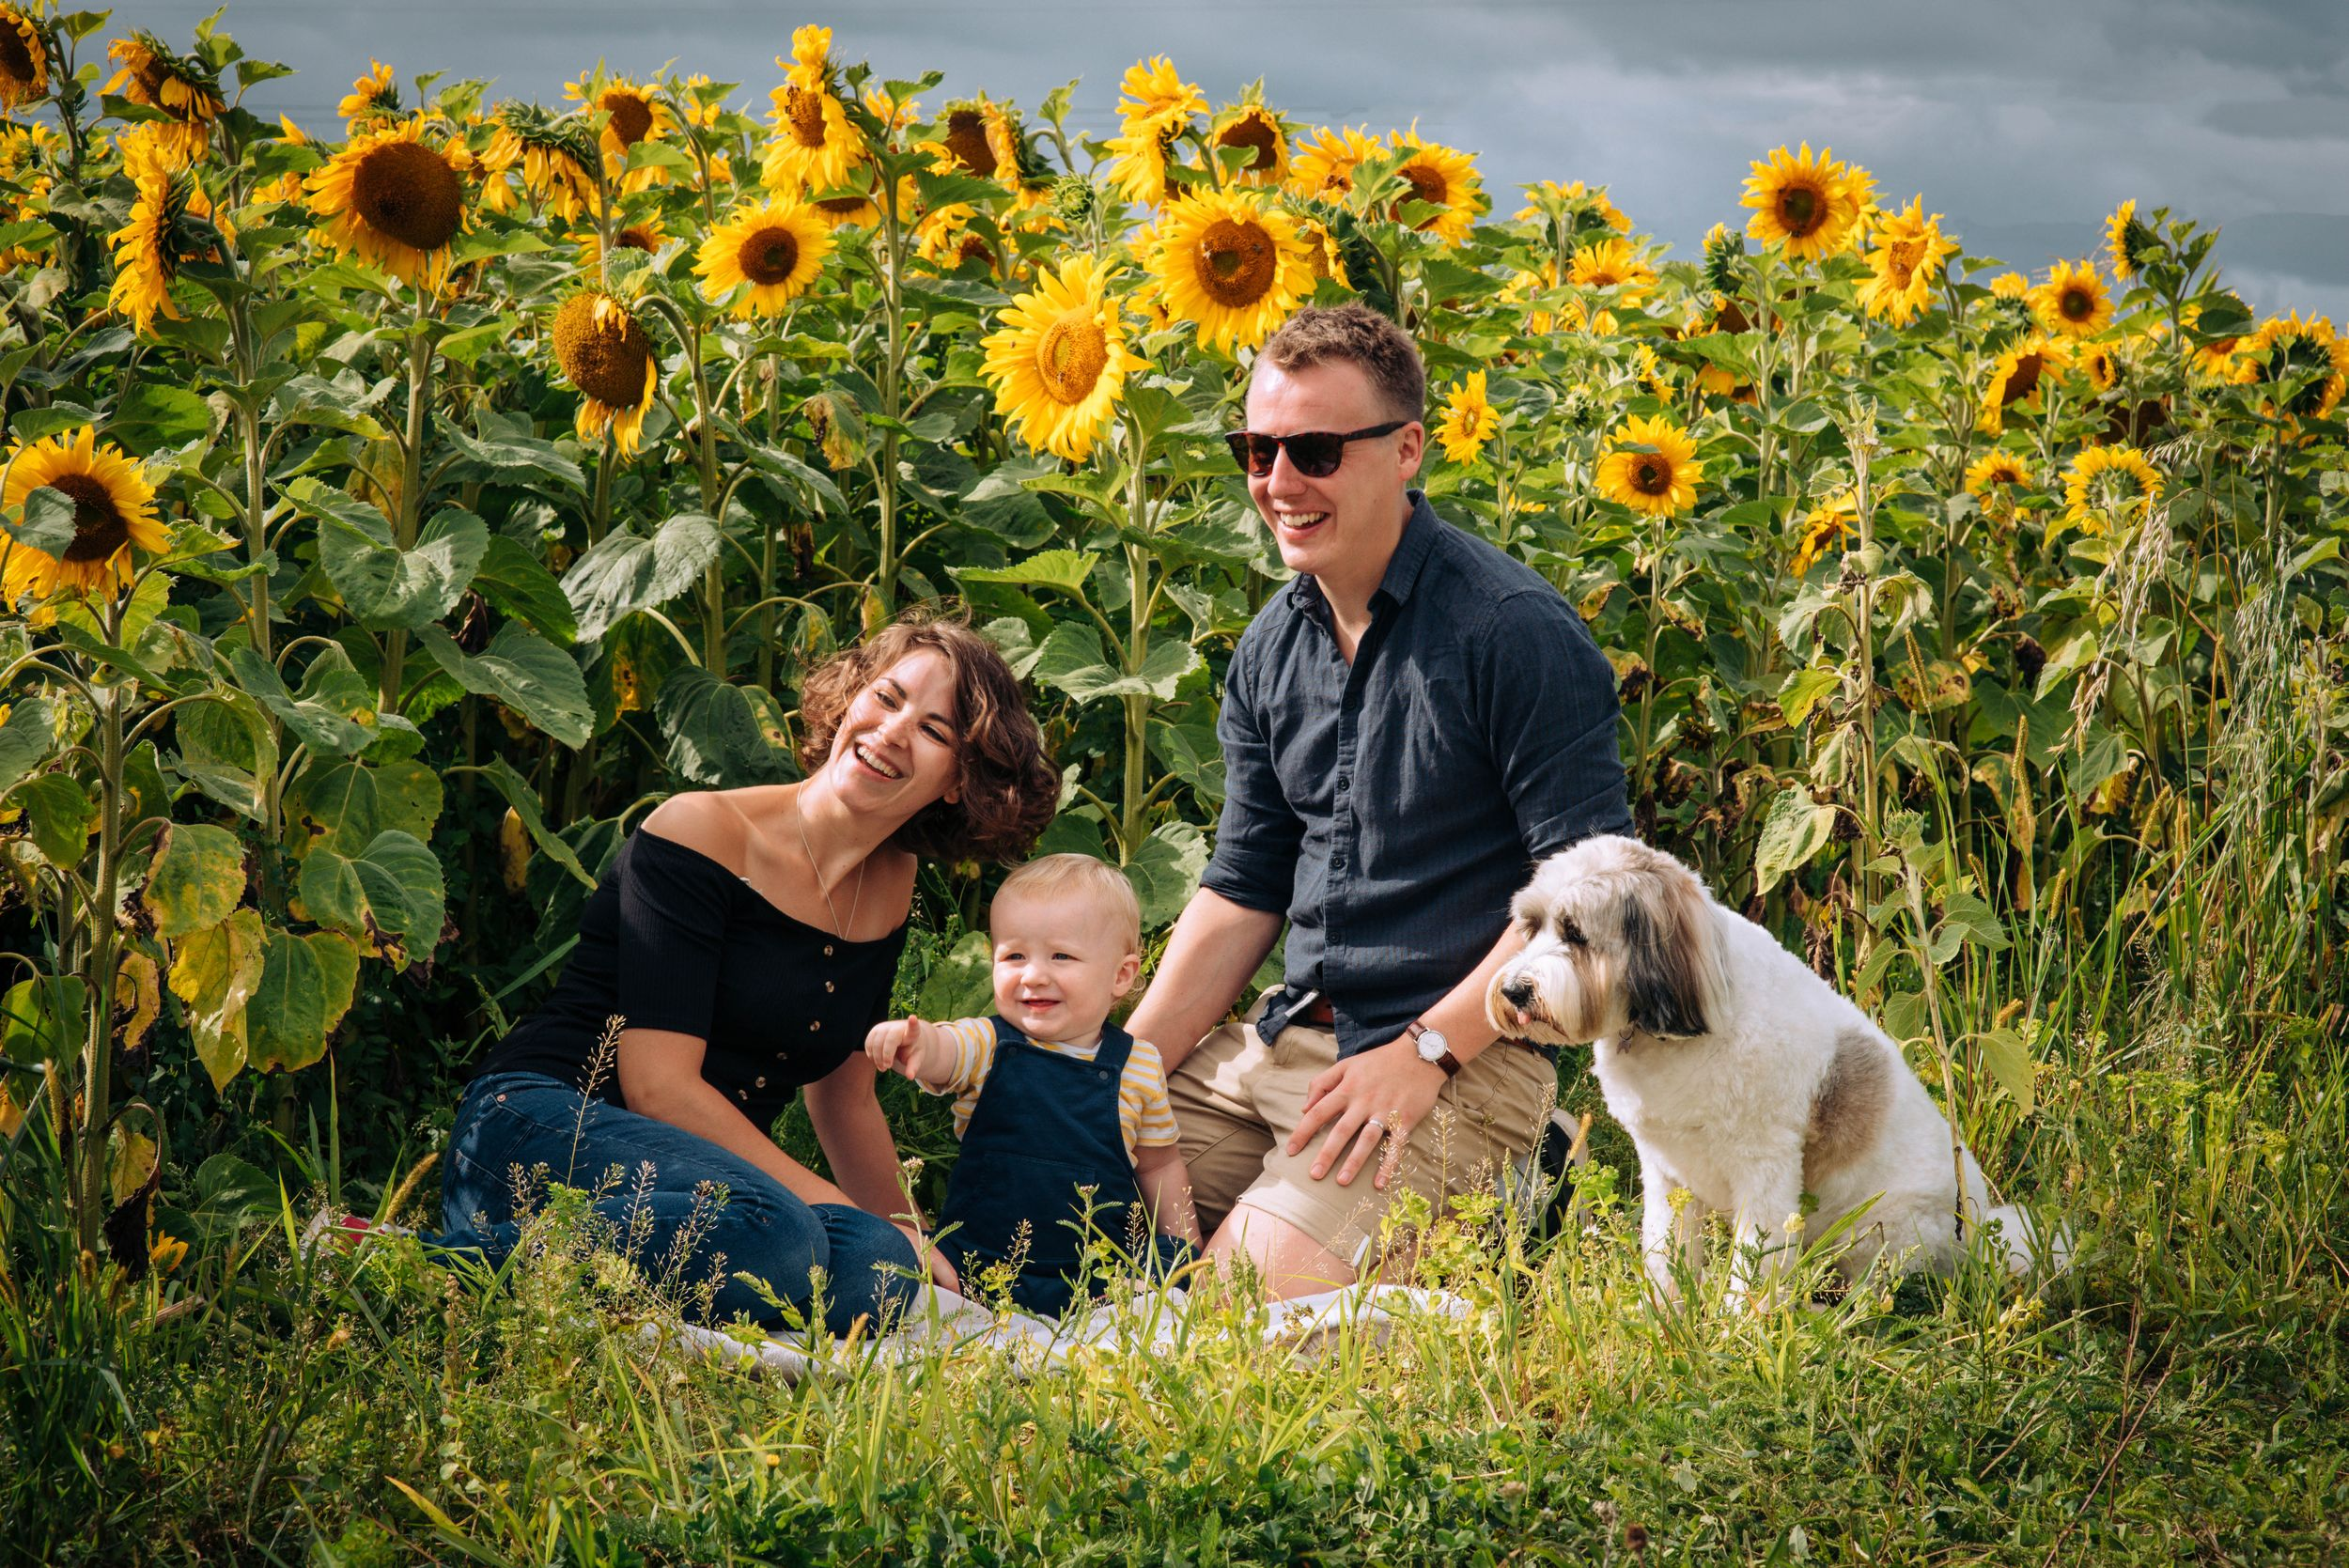 Zara Davis Photography Stroud Gloucestershire Cotswolds Pets family sunflowers